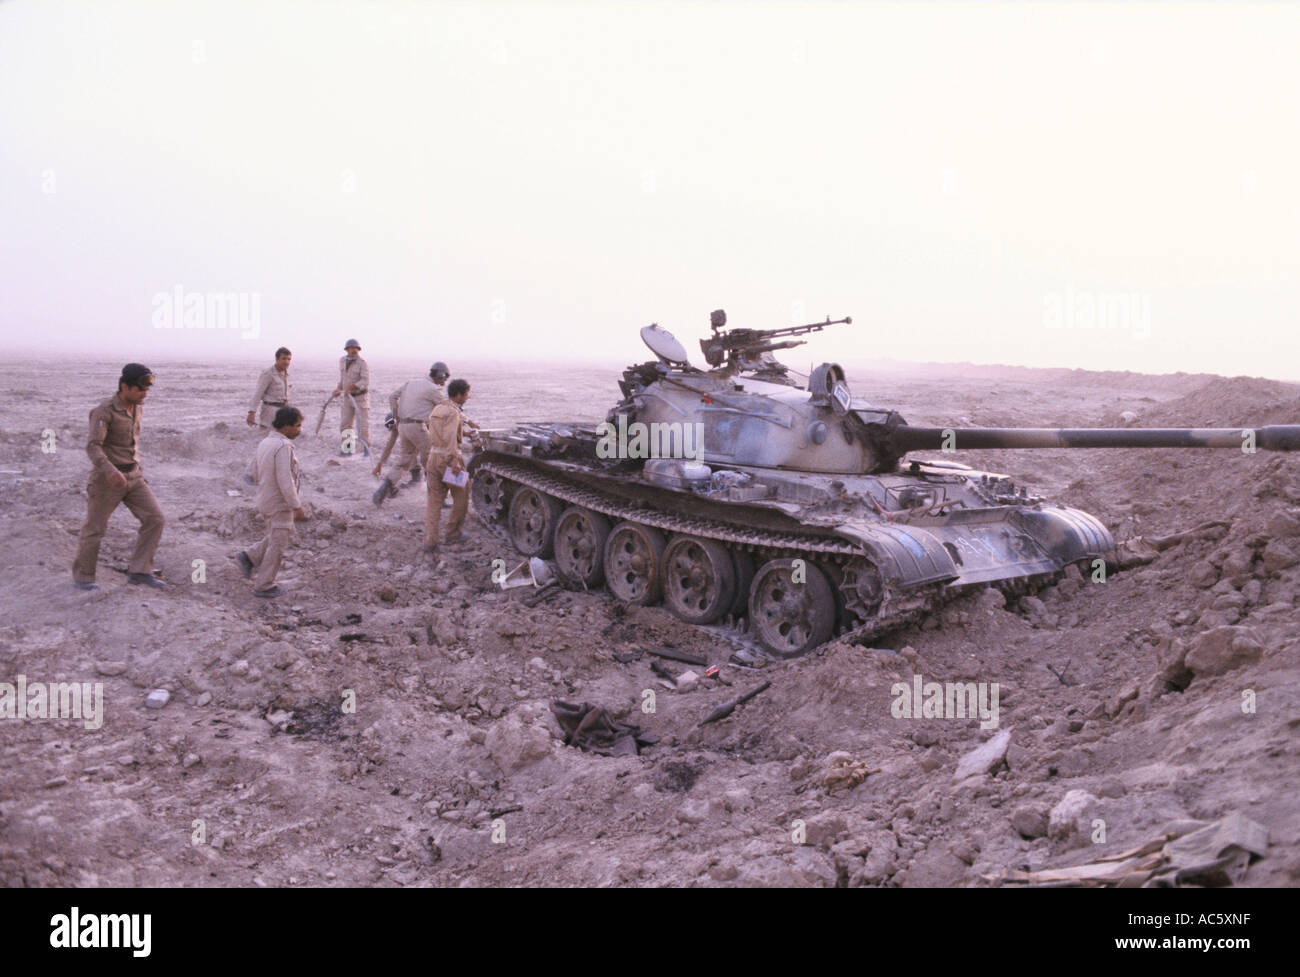 https://c7.alamy.com/comp/AC5XNF/iraq-iran-war-iraqi-soldiers-approach-captured-iranian-tank-near-basra-AC5XNF.jpg